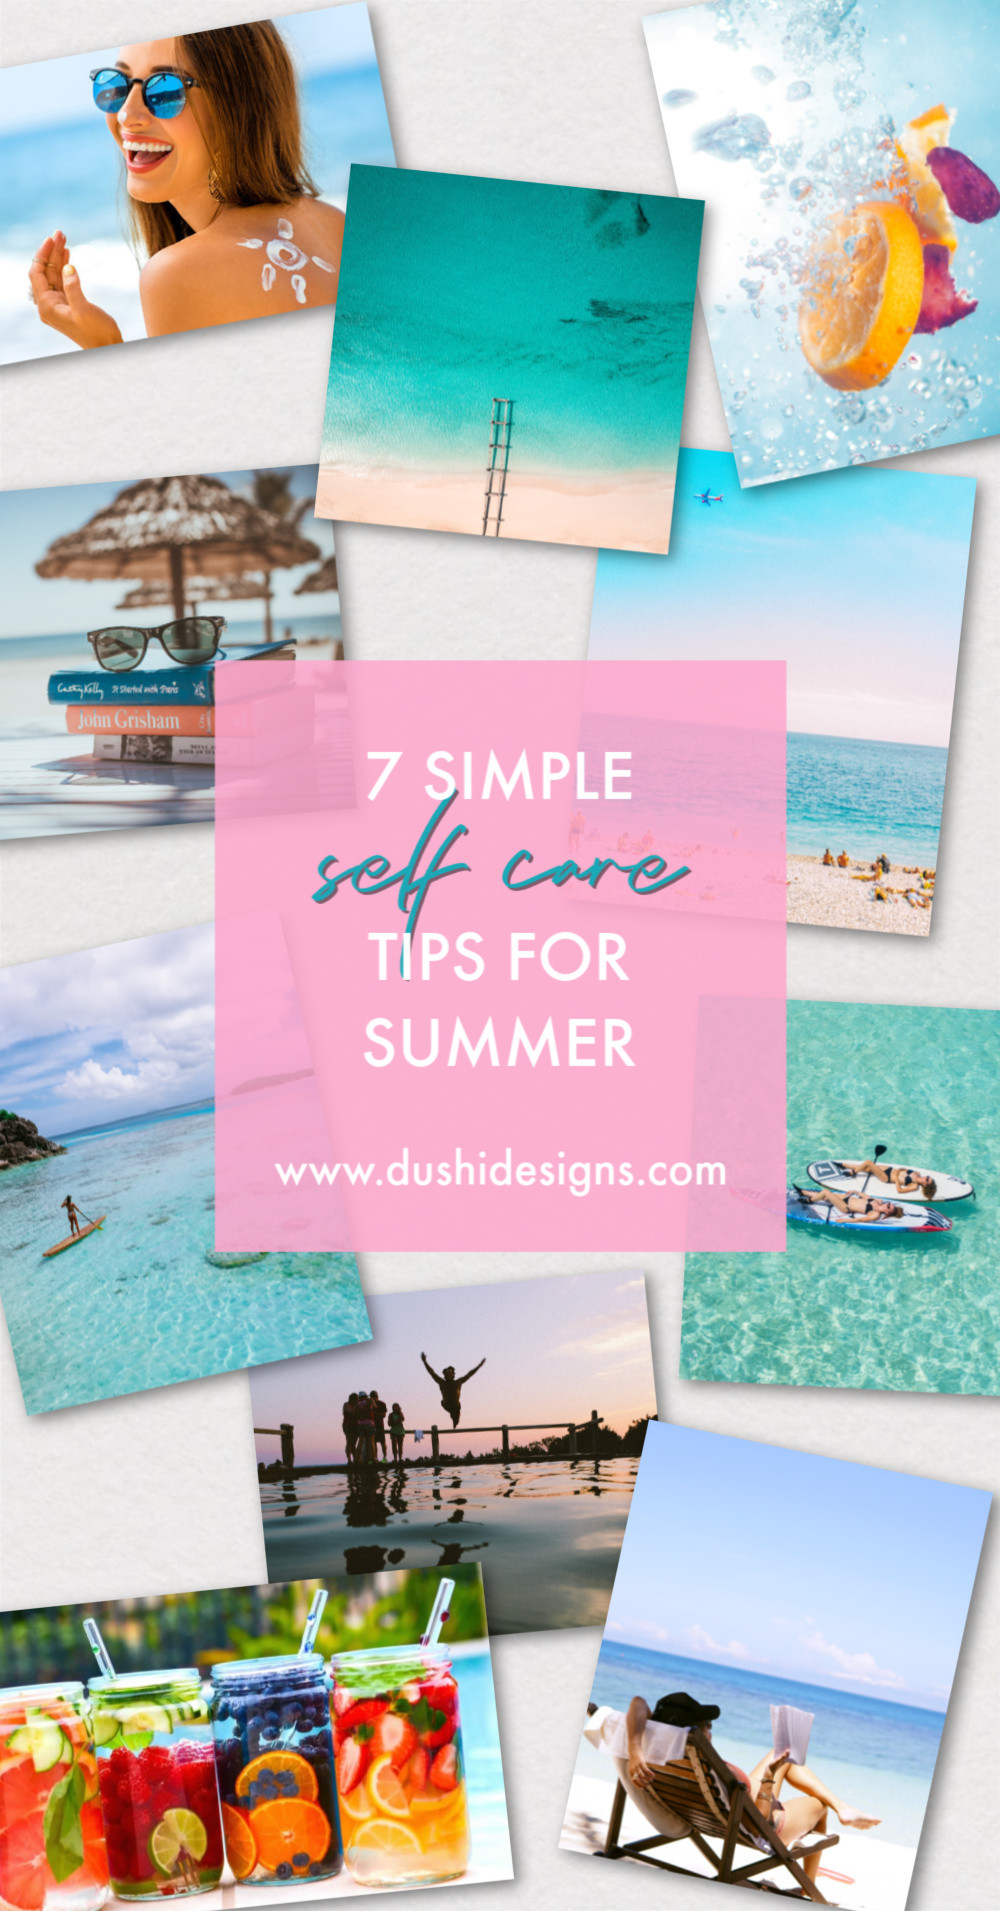 7 Simple Self Care Tips For Summer